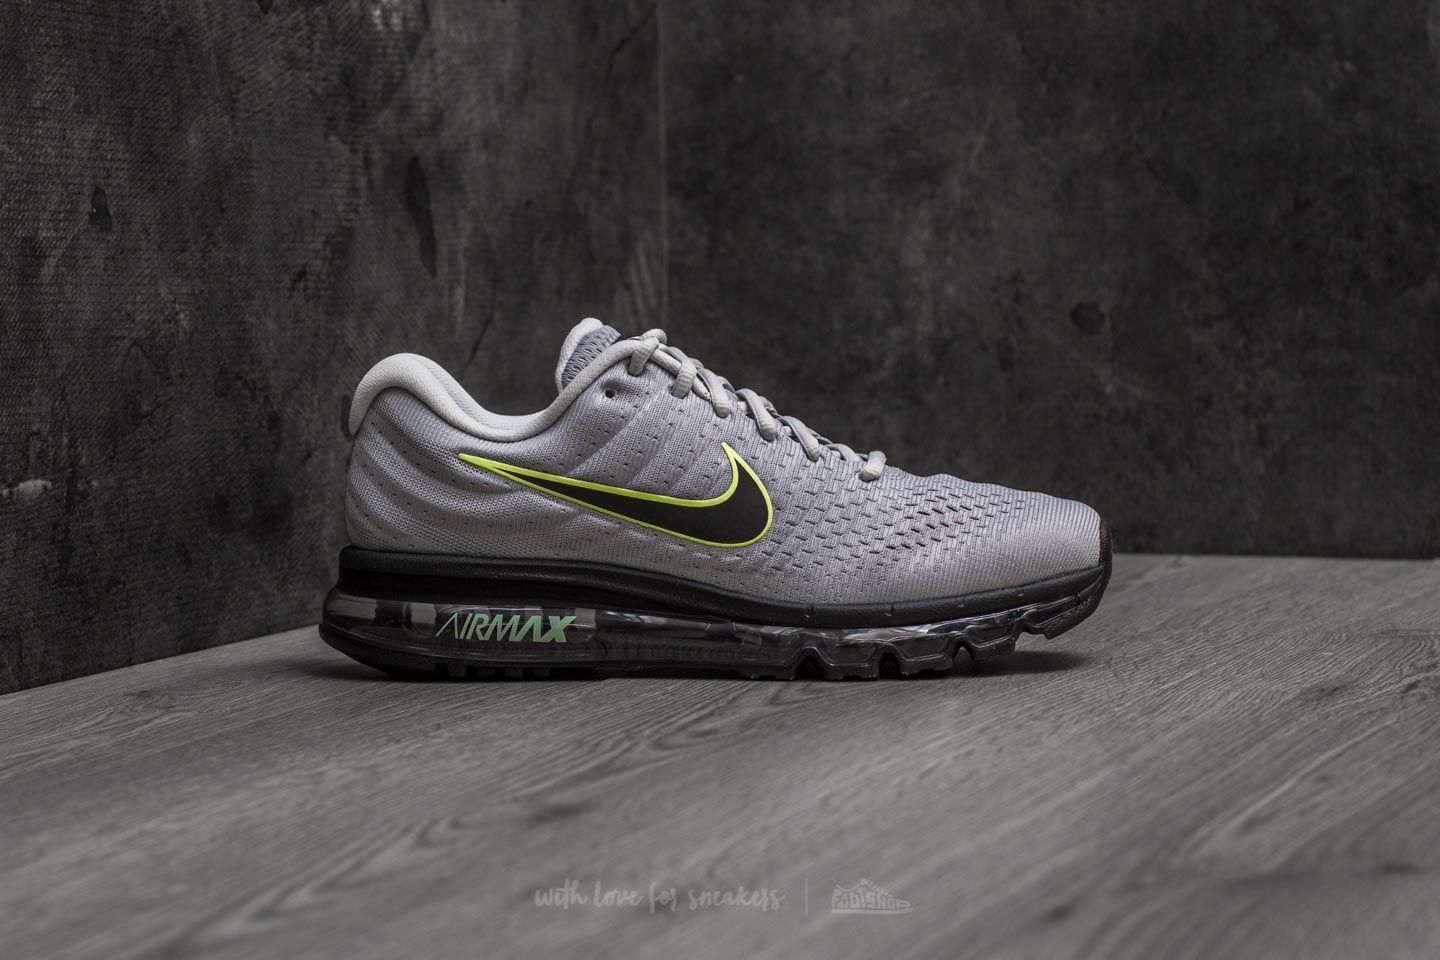 new style 212a6 4ebd9 Nike Air Max 2017 Wolf Grey  Black-pure Platinum in Gray for Men - Lyst